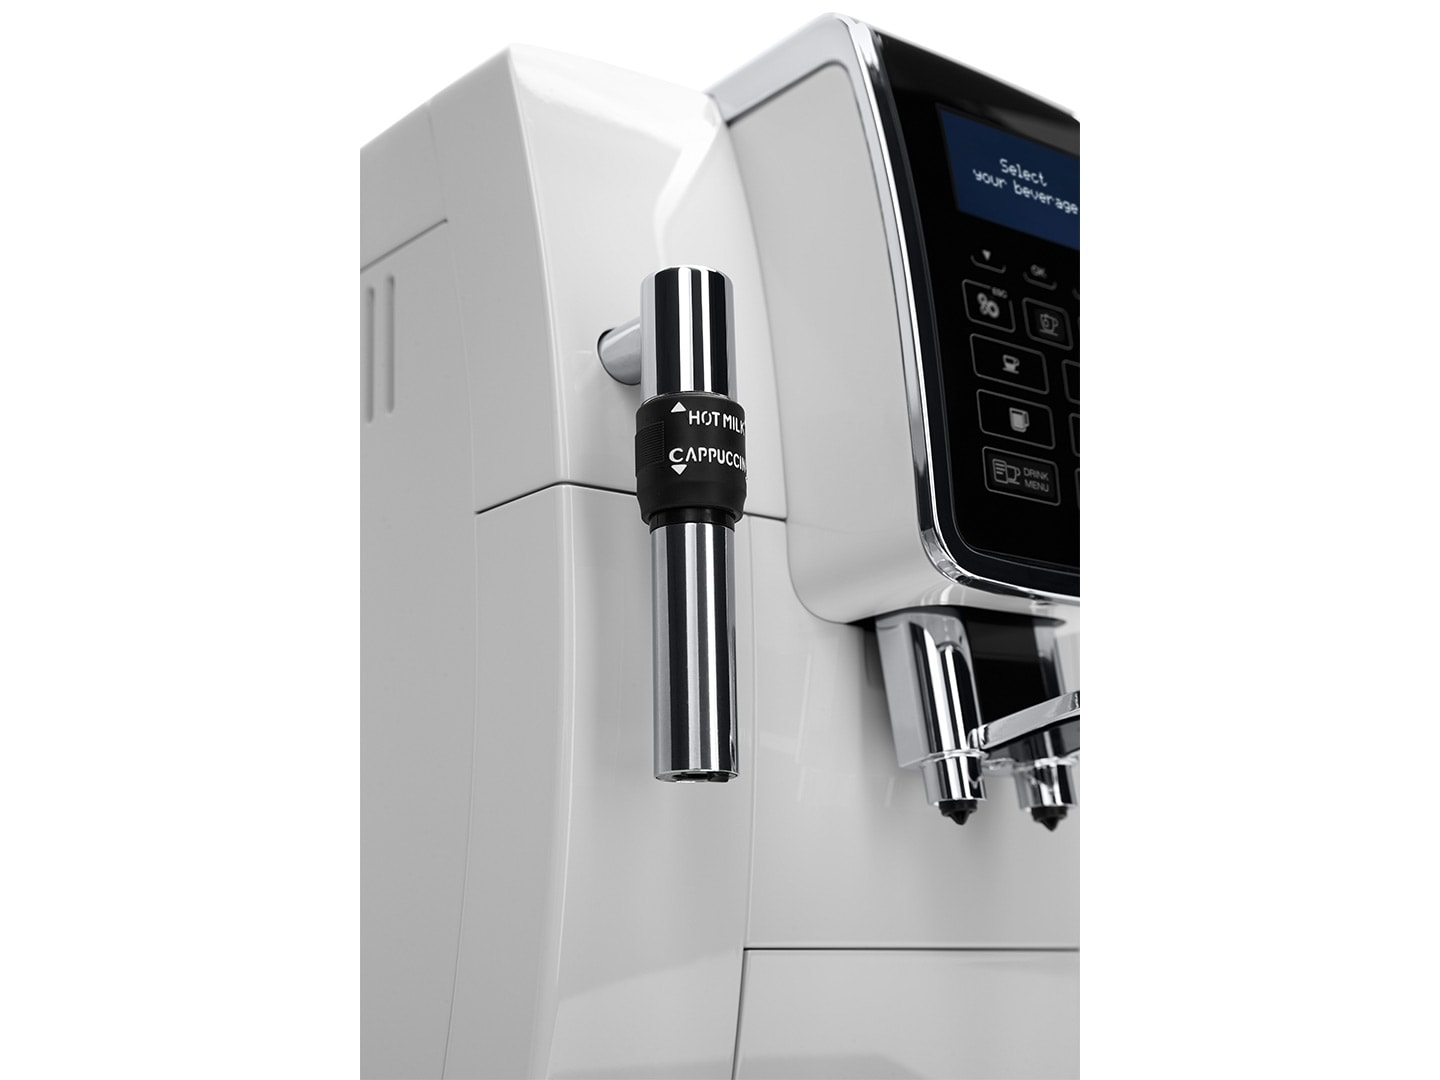 Dinamica coffee machine has a steam want for milk frothing for perfect coffee beverages